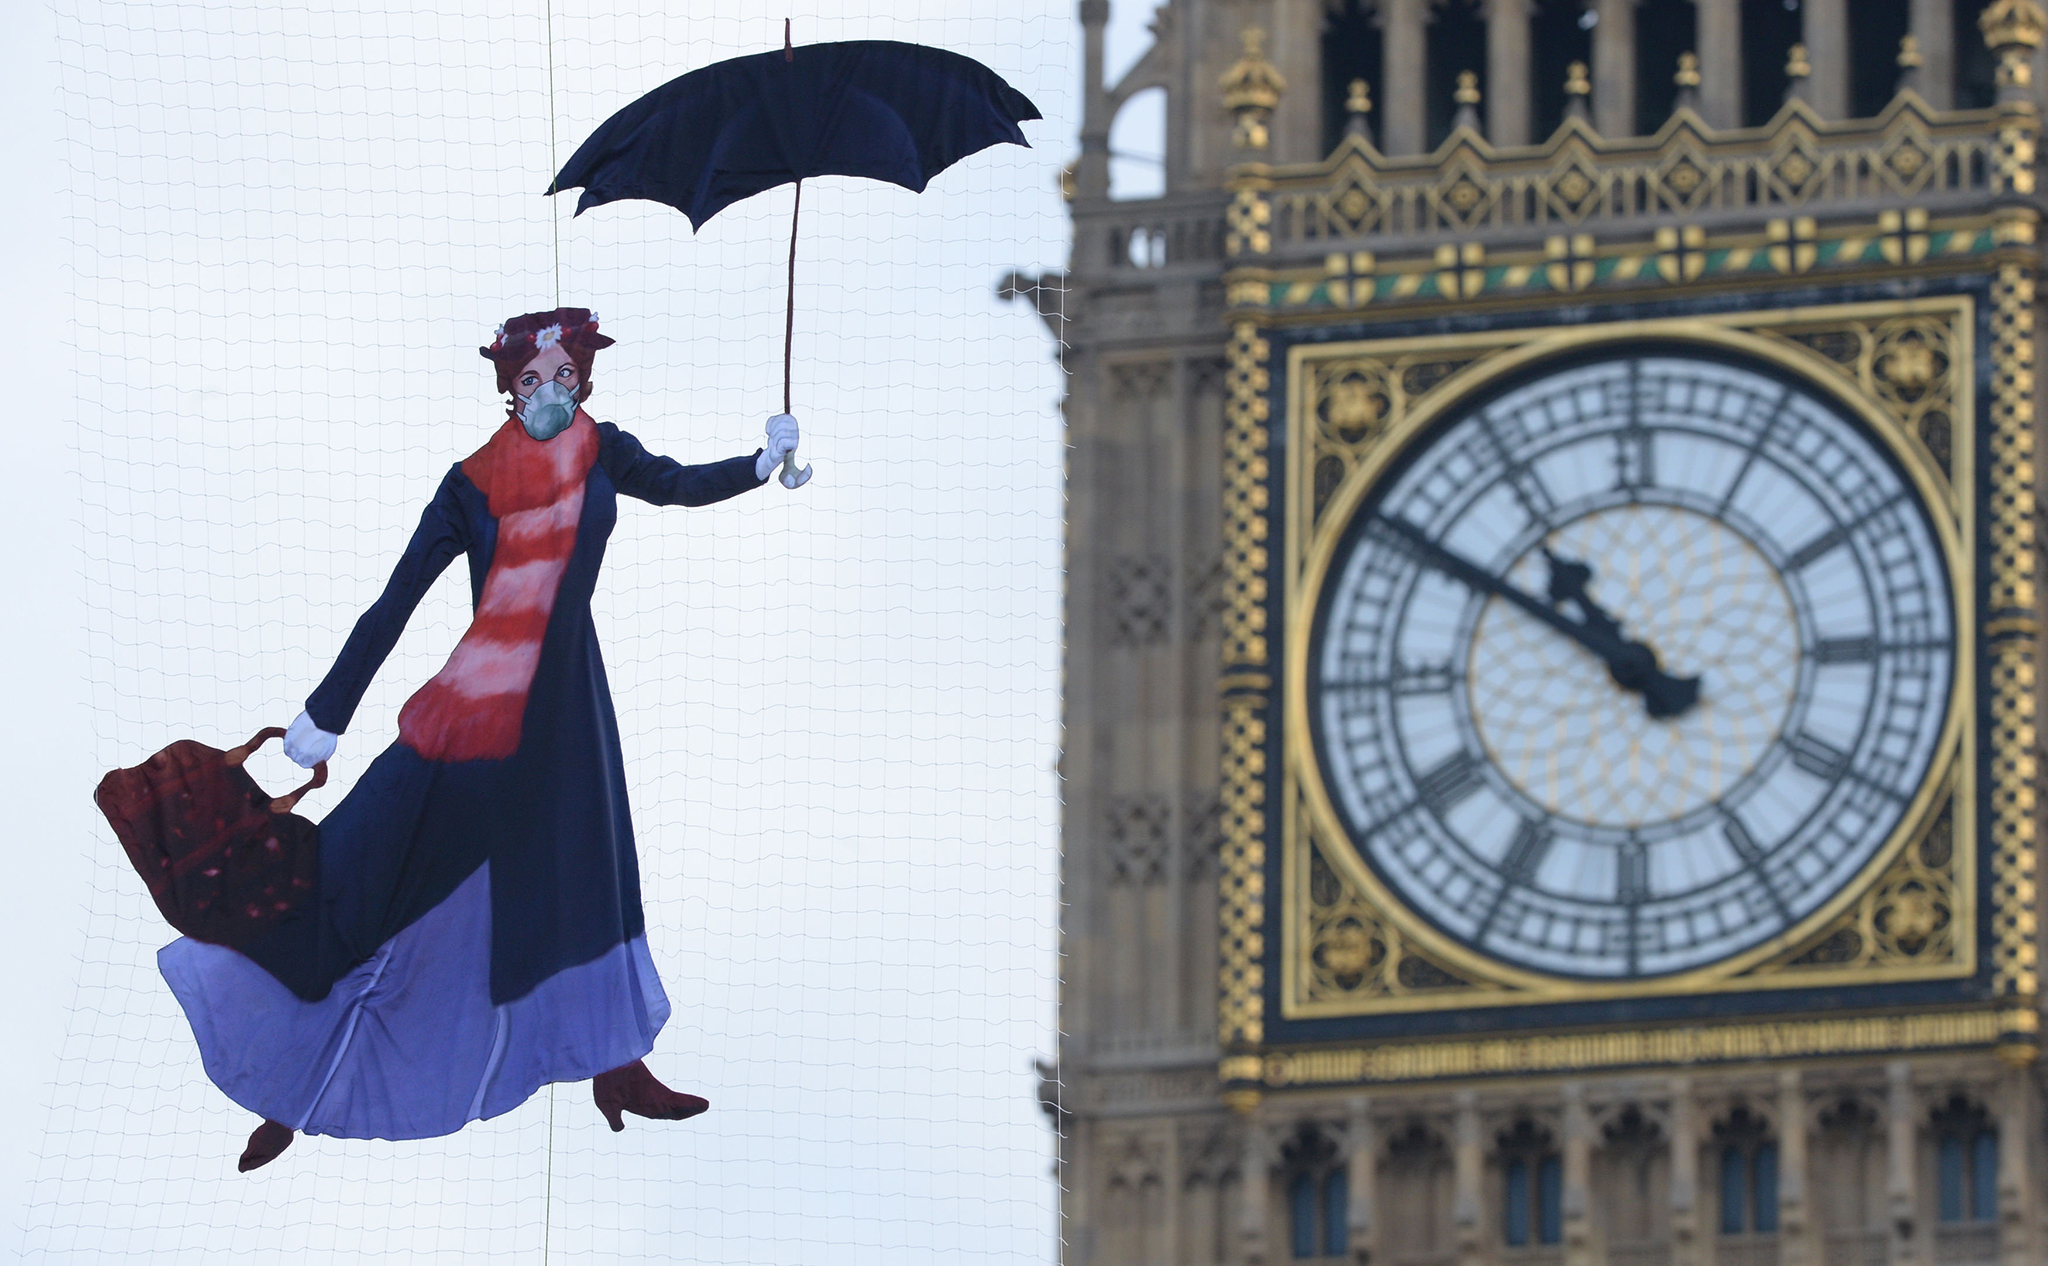 A drawing of Mary Poppins wearing a pollution mask is suspended in front of the Queen Elizabeth Tower at the Palace of Westminster by Greenpeace campaigners after it was revealed that legal air pollution limits for the whole year have been broken just five days into 2017. PRESS ASSOCIATION Photo. Picture date: Friday January 6, 2017. See PA story ENVIRONMENT Pollution. Photo credit should read: Victoria Jones/PA